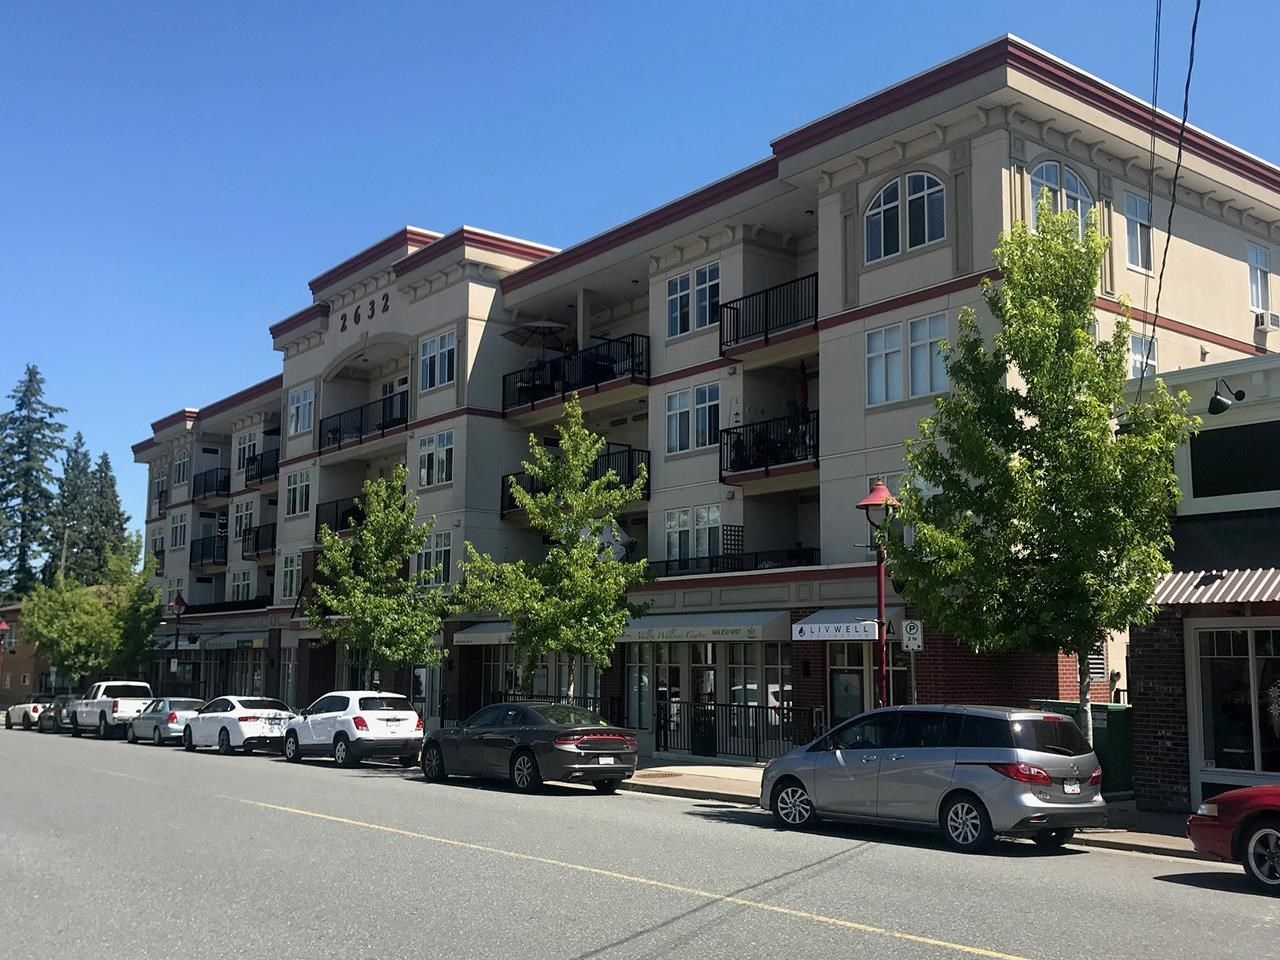 Main Photo: 115 2632 PAULINE Street in Abbotsford: Central Abbotsford Office for lease : MLS®# C8038892